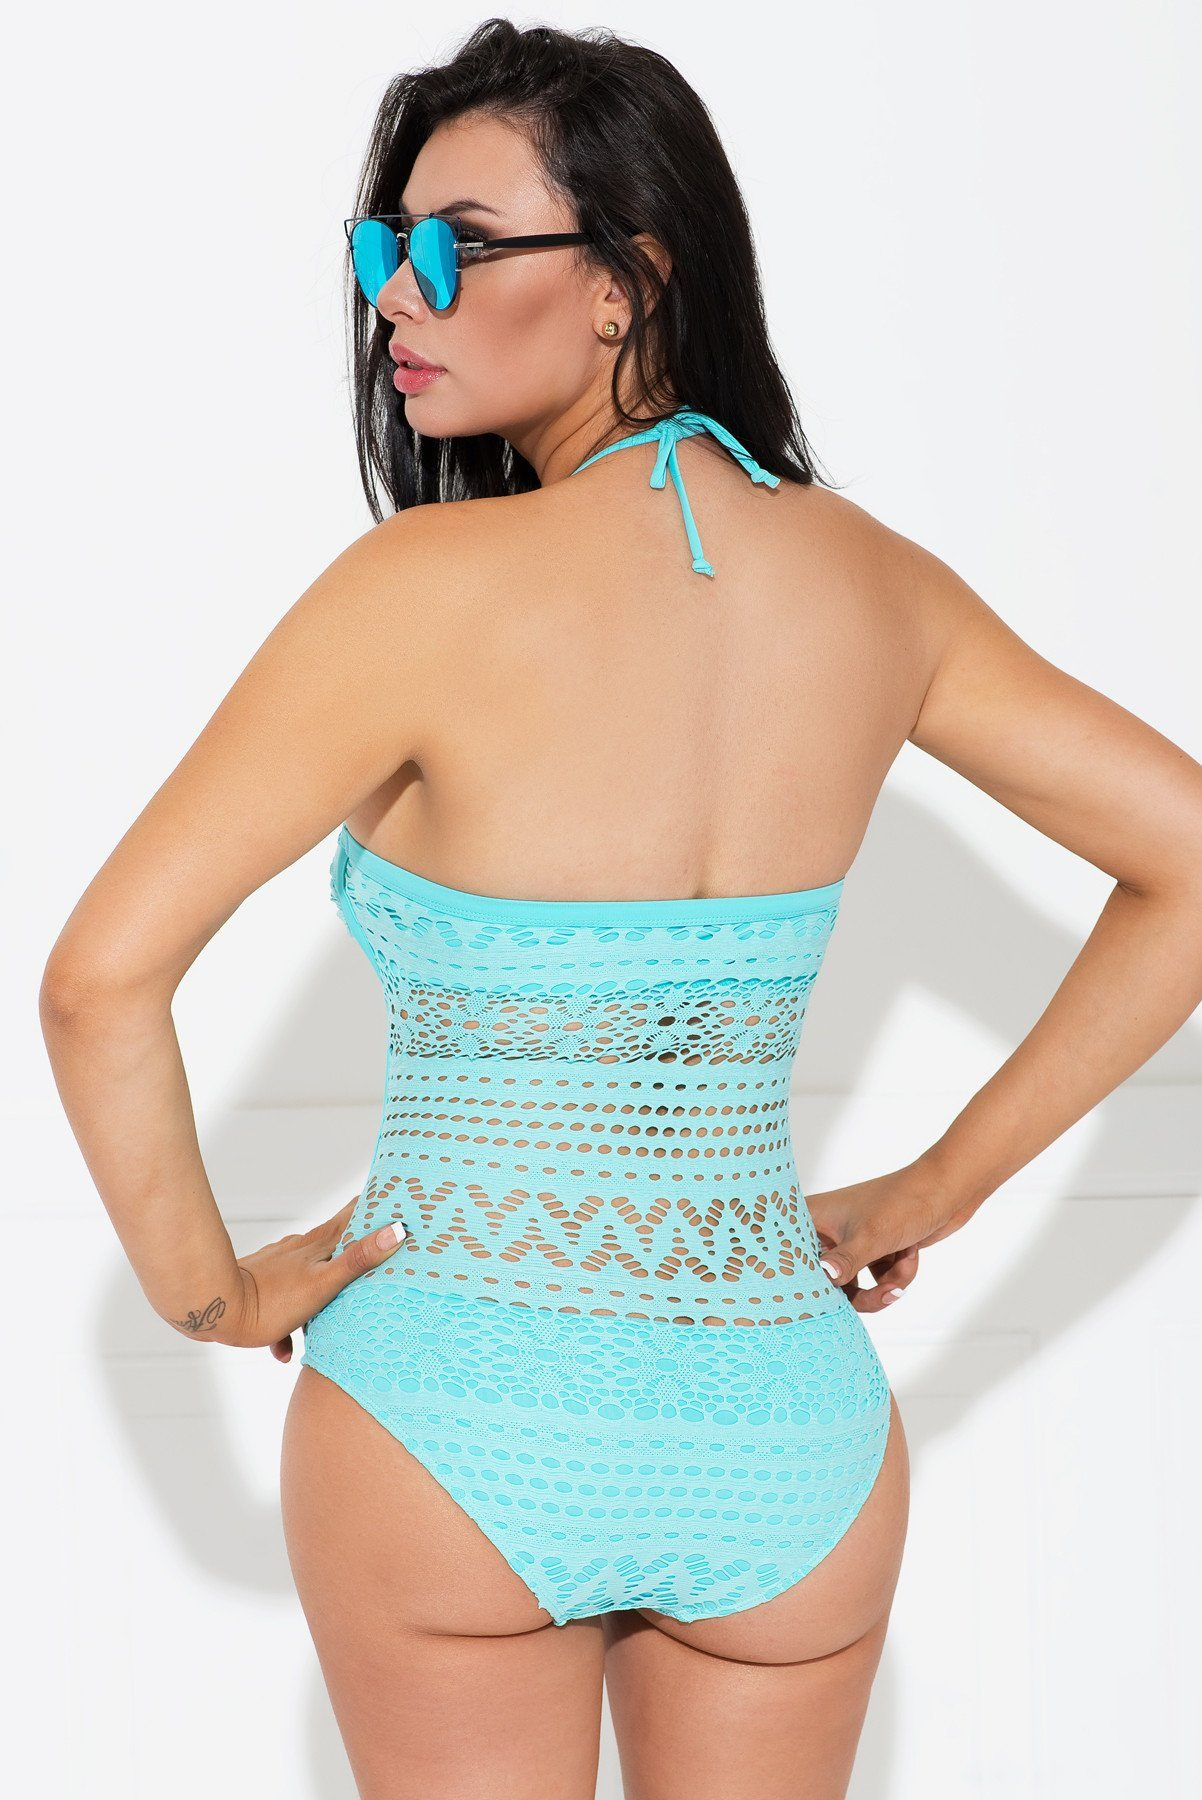 Dress - Cozumel Mint One Piece